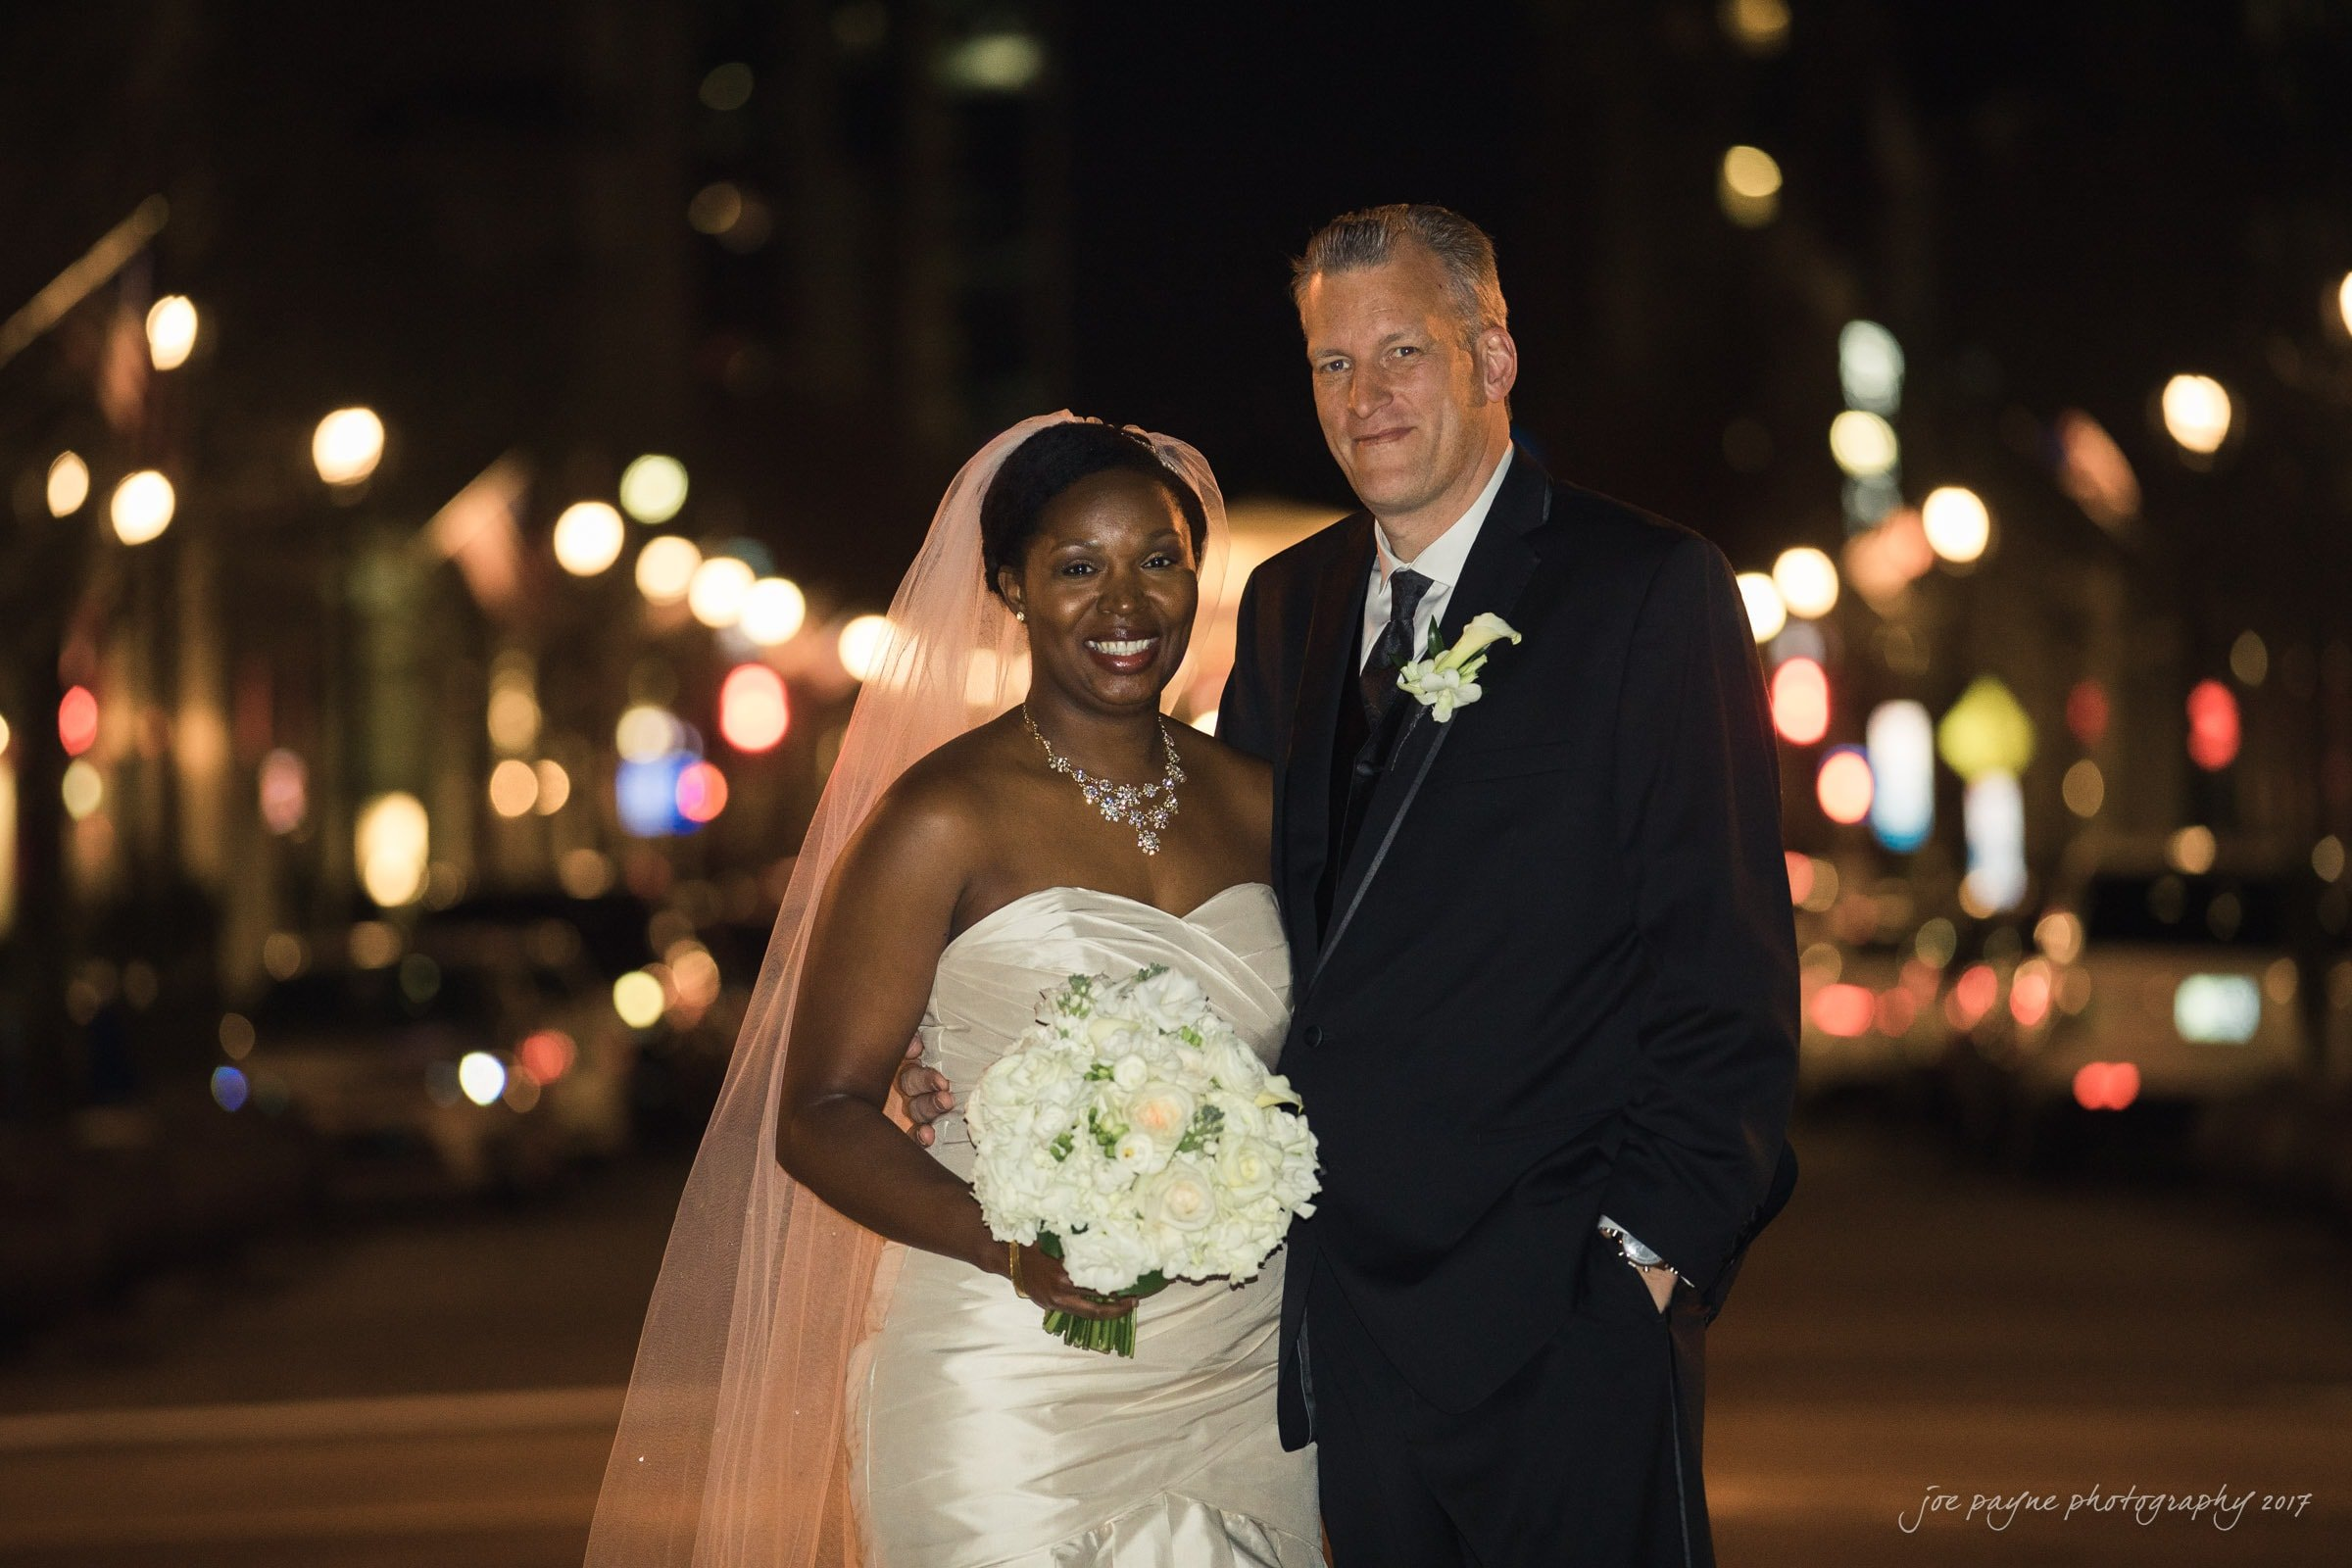 Downtown Raleigh Wedding Portrait Photo - Mali & Udo